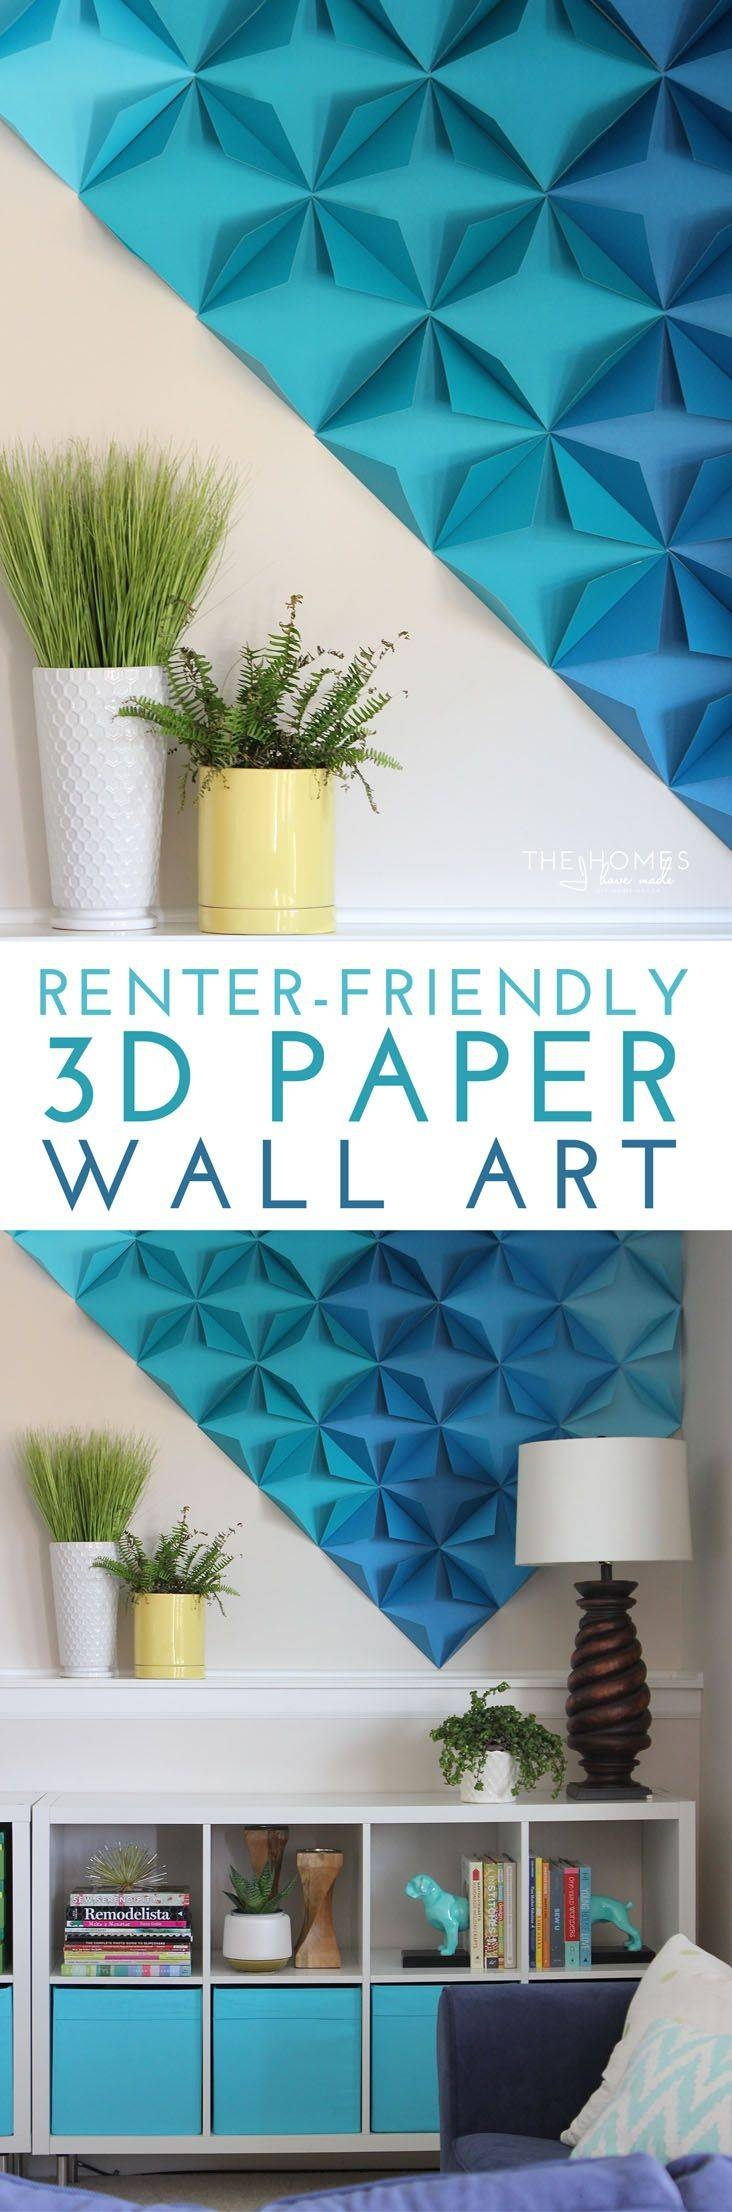 25+ Unique Paper Wall Art Ideas On Pinterest | Toilet Paper Roll Throughout Newest Unique 3D Wall Art (View 5 of 20)